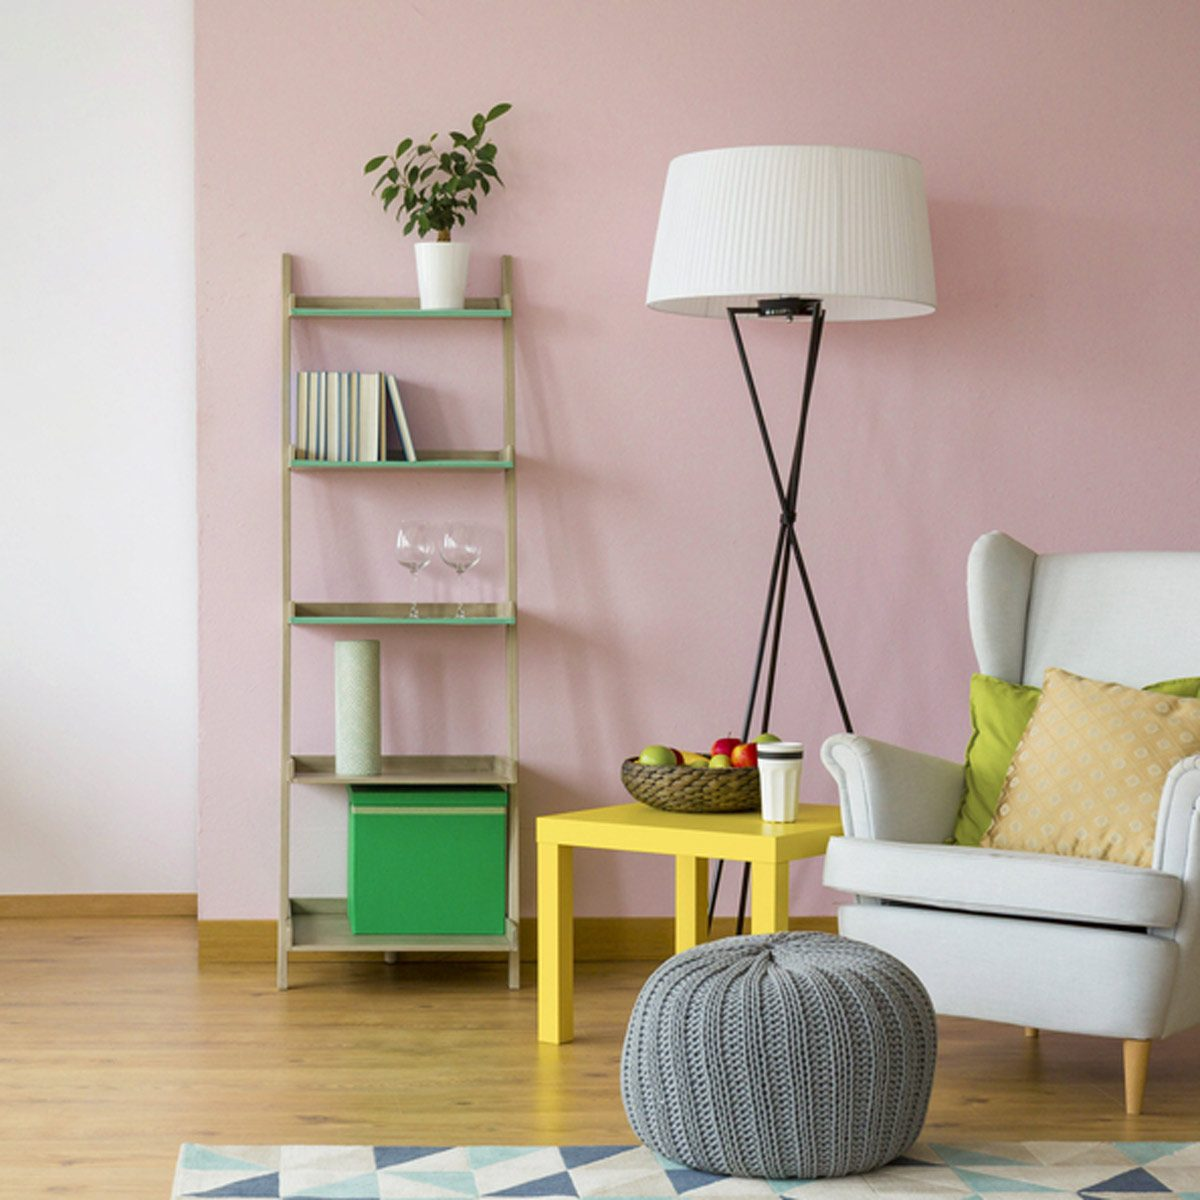 13 Great Paint Ideas for Your Living Room — The Family Handyman